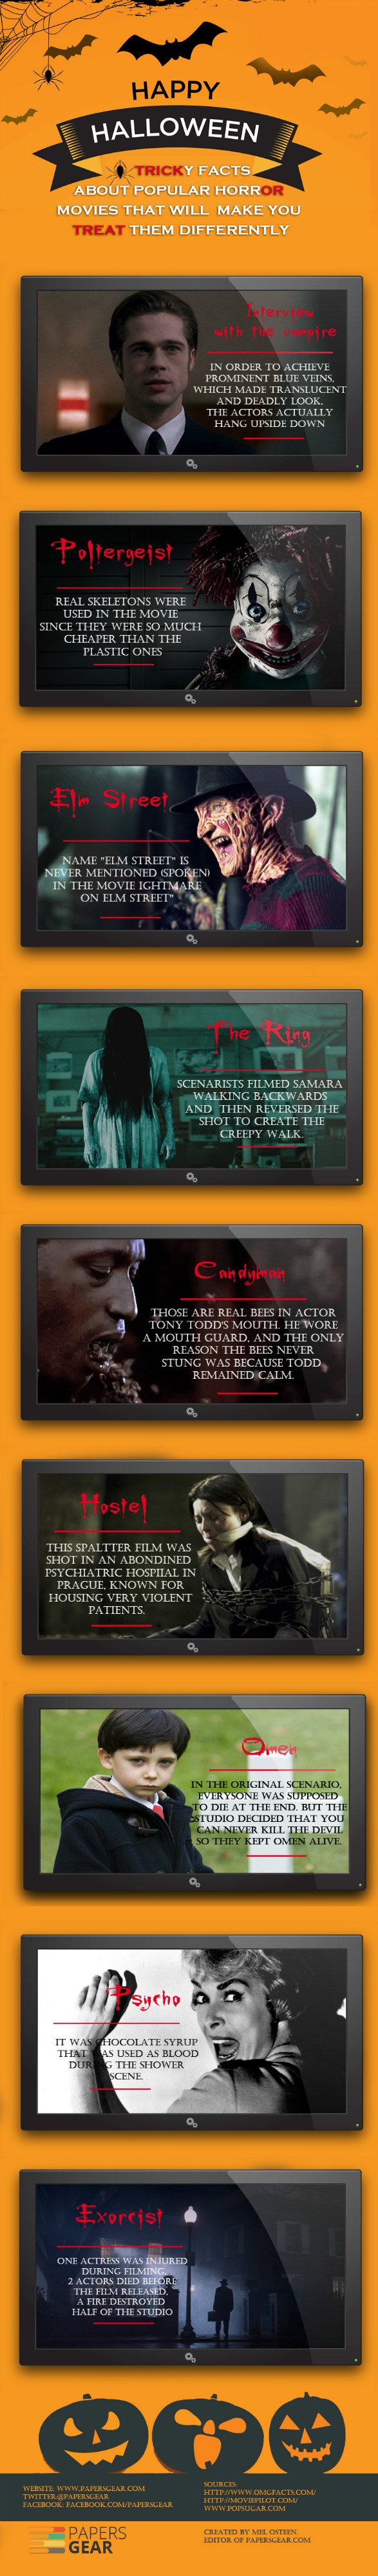 Tricky Facts Popular Horror Movies [Infographic]